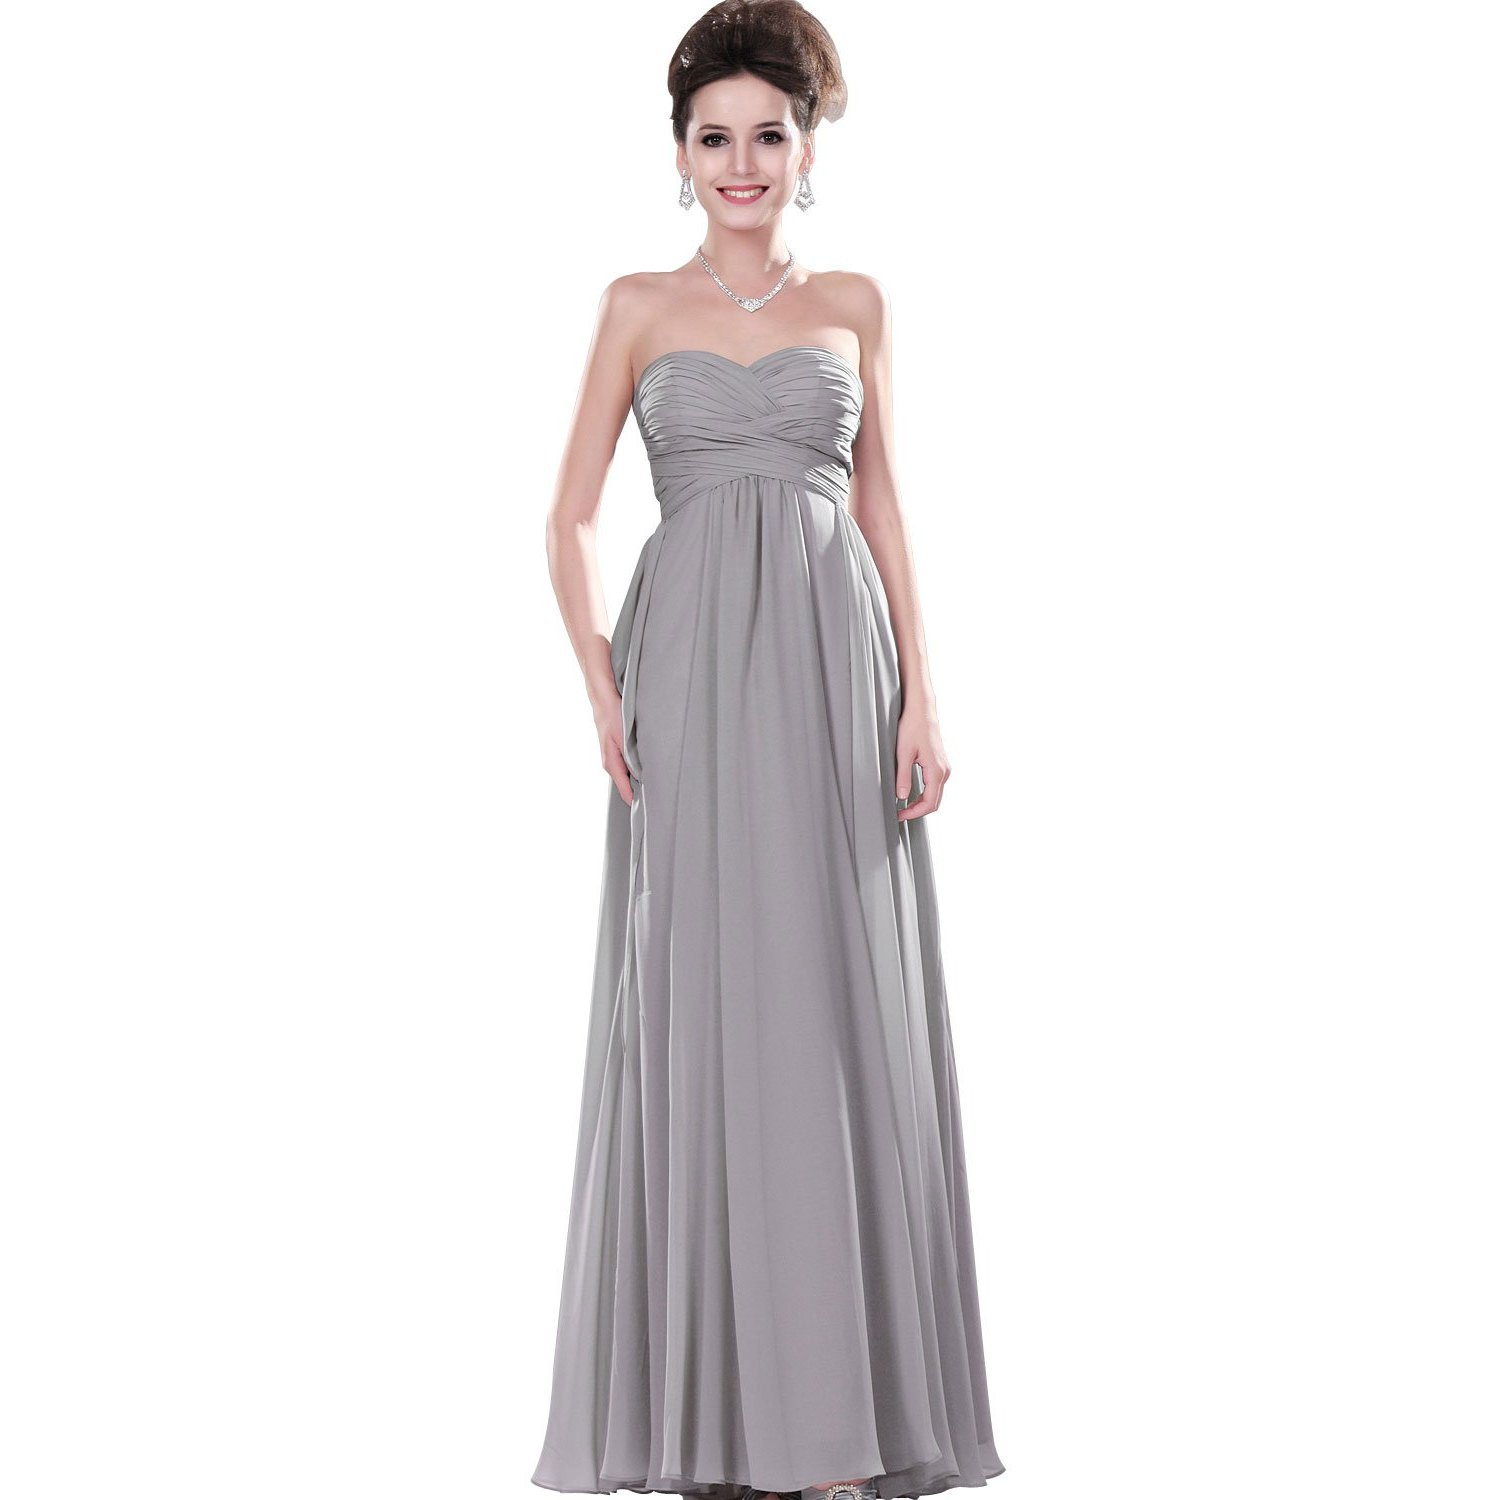 Robe grise mariage longue